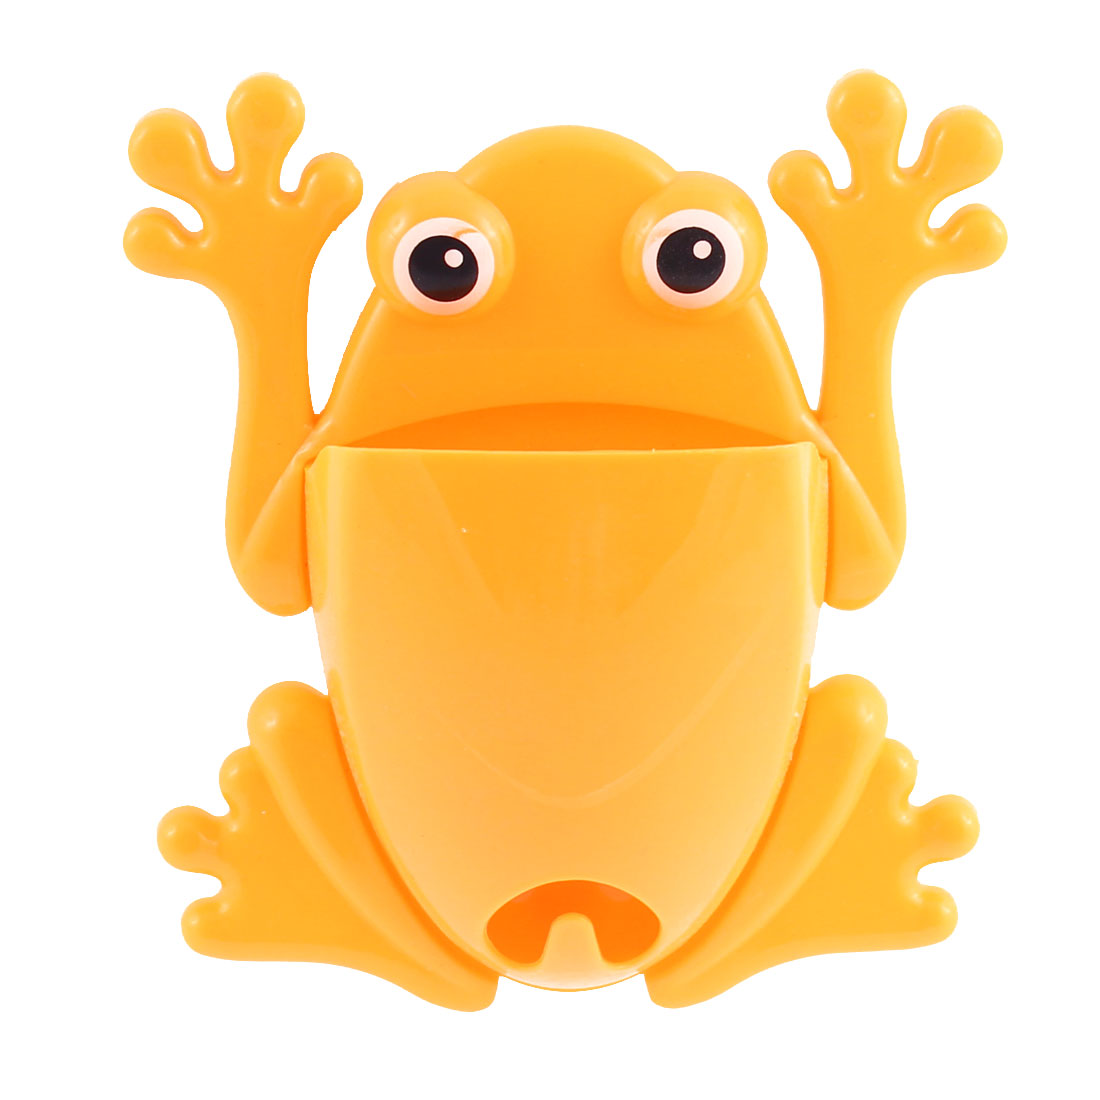 Home Bathroom Frog Design Wall Stick Toothbrush Holder Organizer Yellow